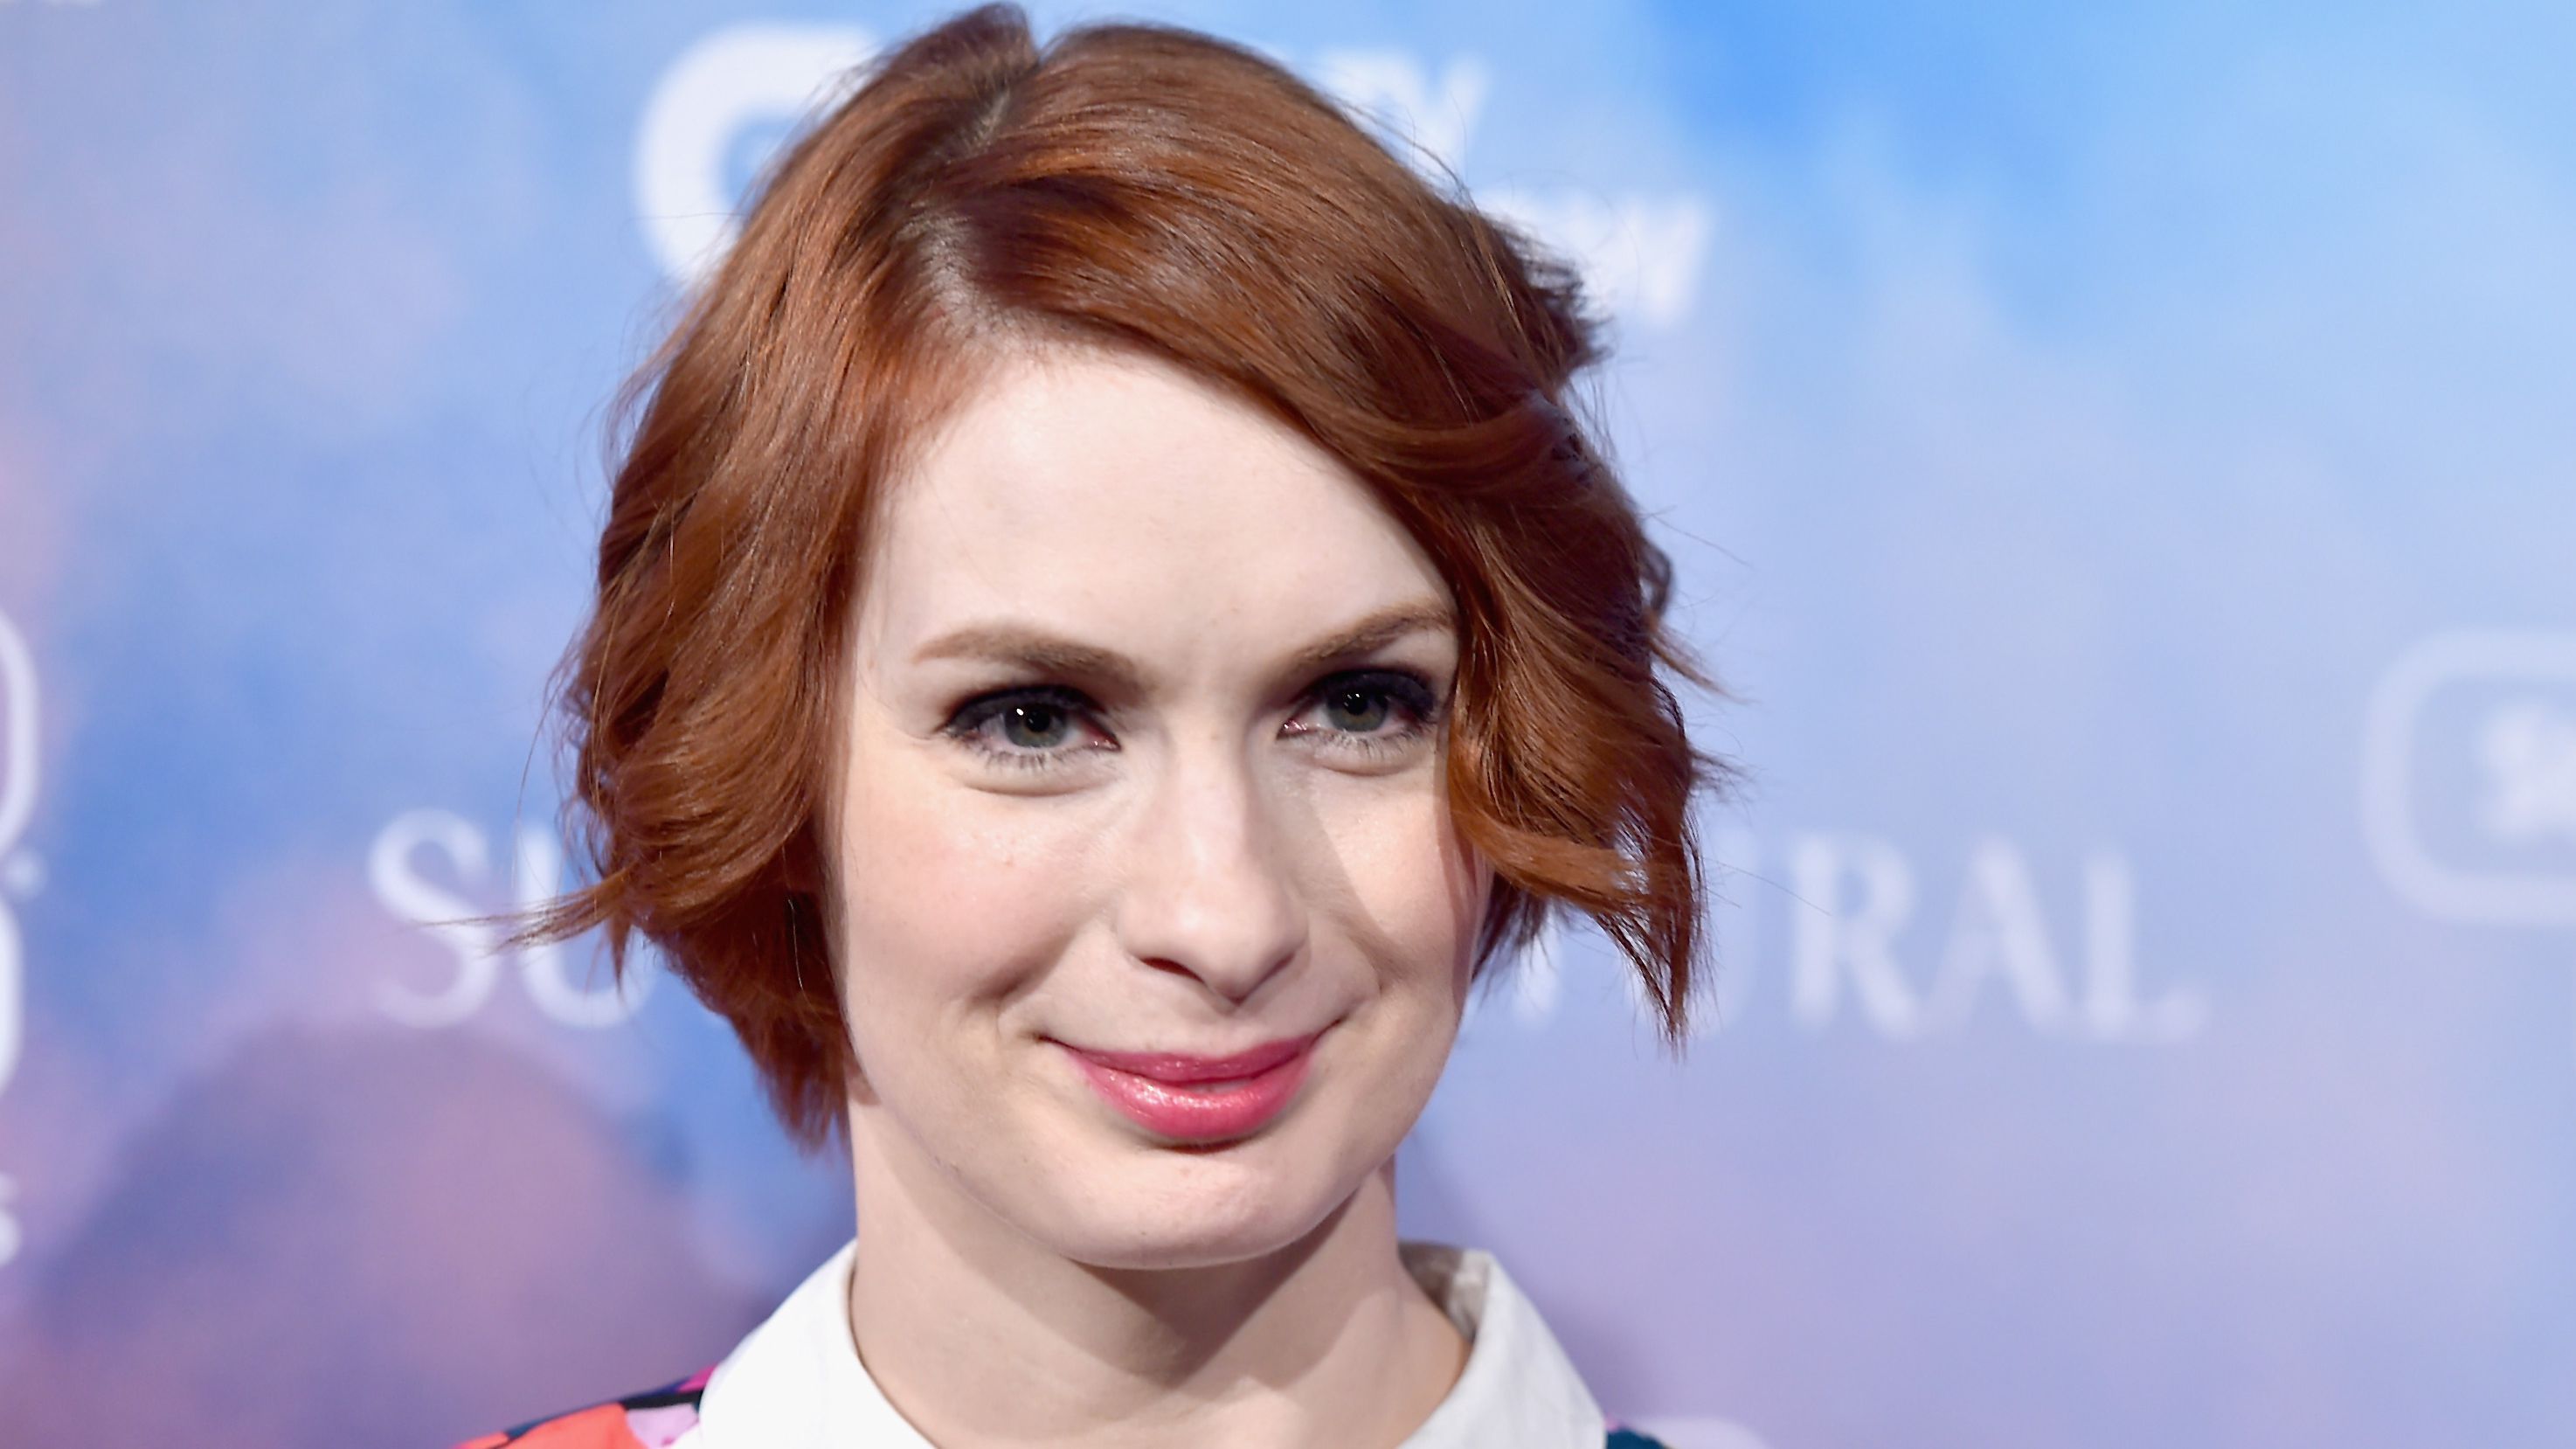 Is Felicia Day Pregnant photo 1